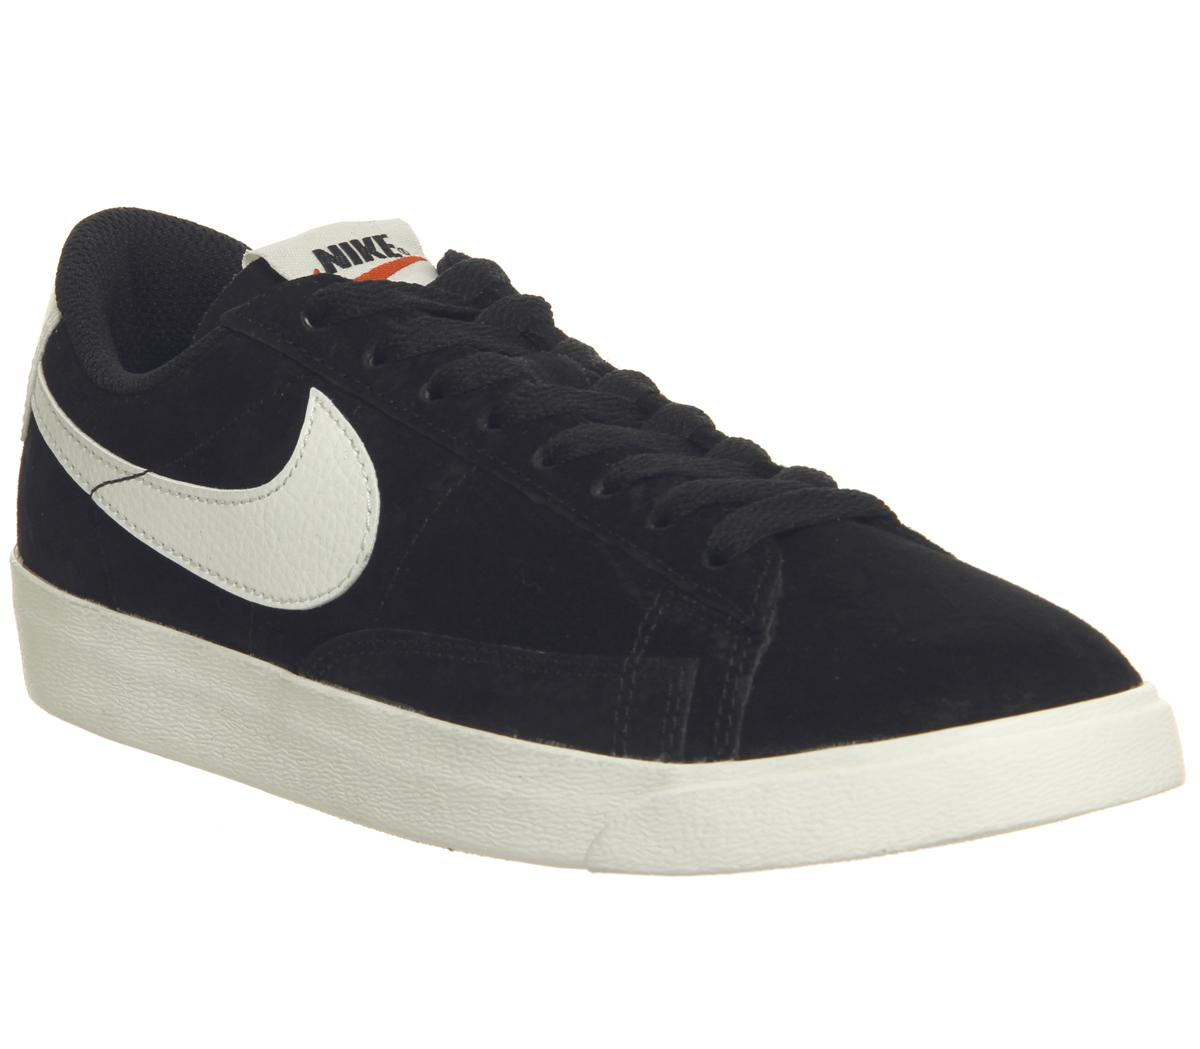 brand new a498e 86a15 Nike Blazer Low Trainers Black White F - Hers trainers